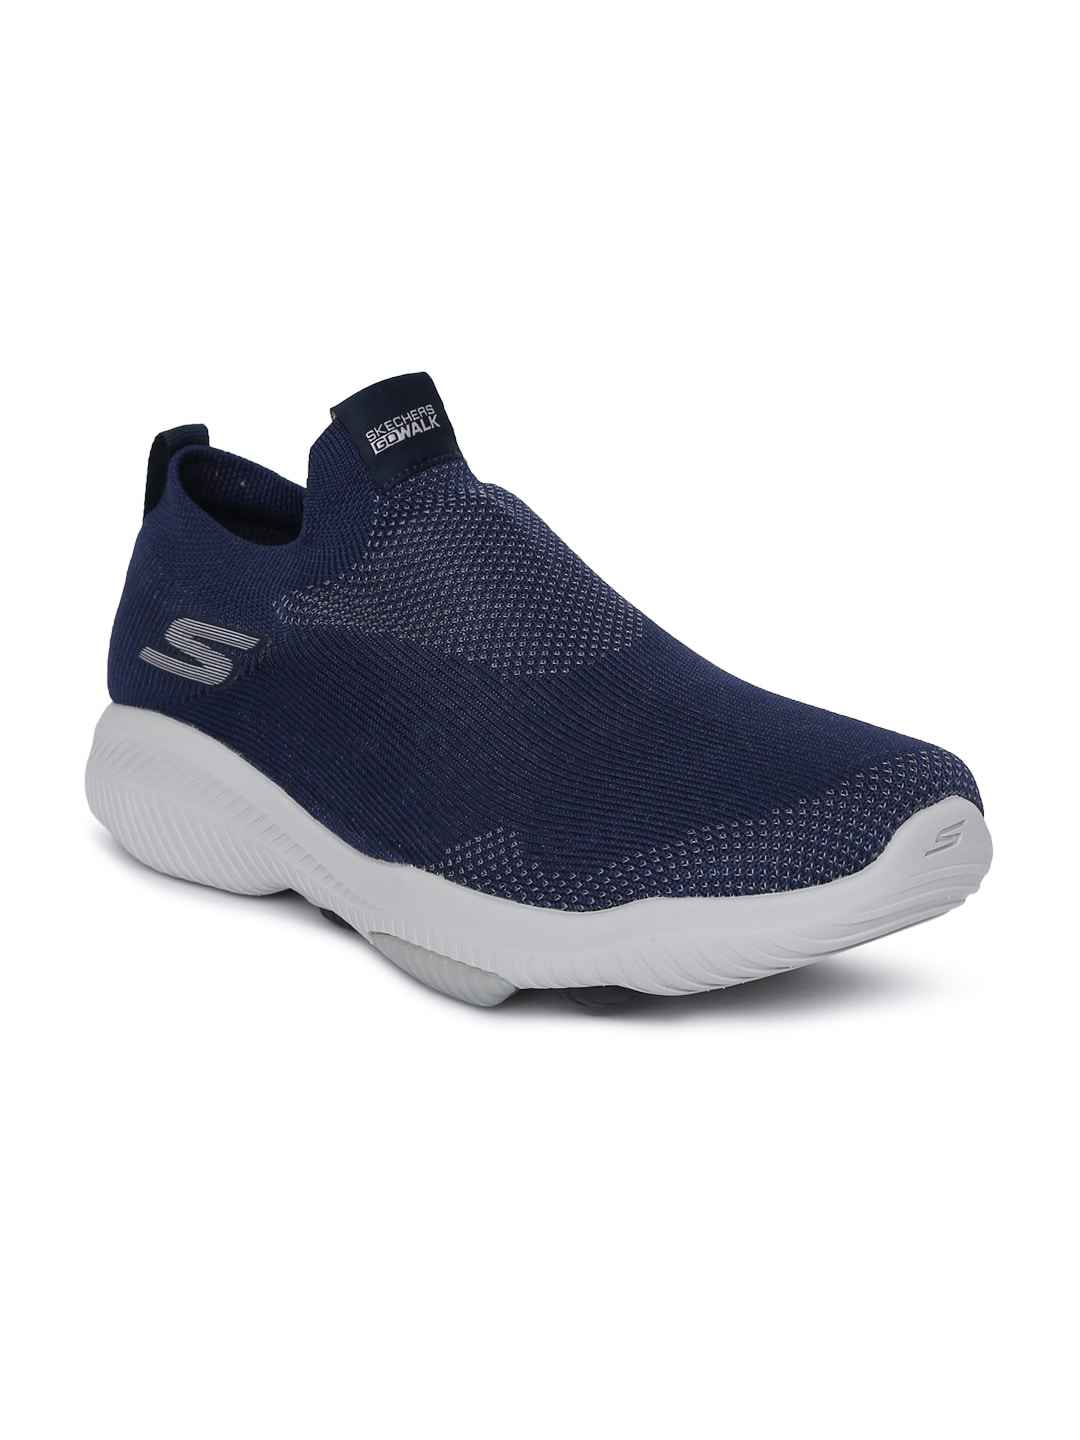 9a81a5ca4a6f Skechers Walking Shoes - Buy Skechers Walking Shoes online in India